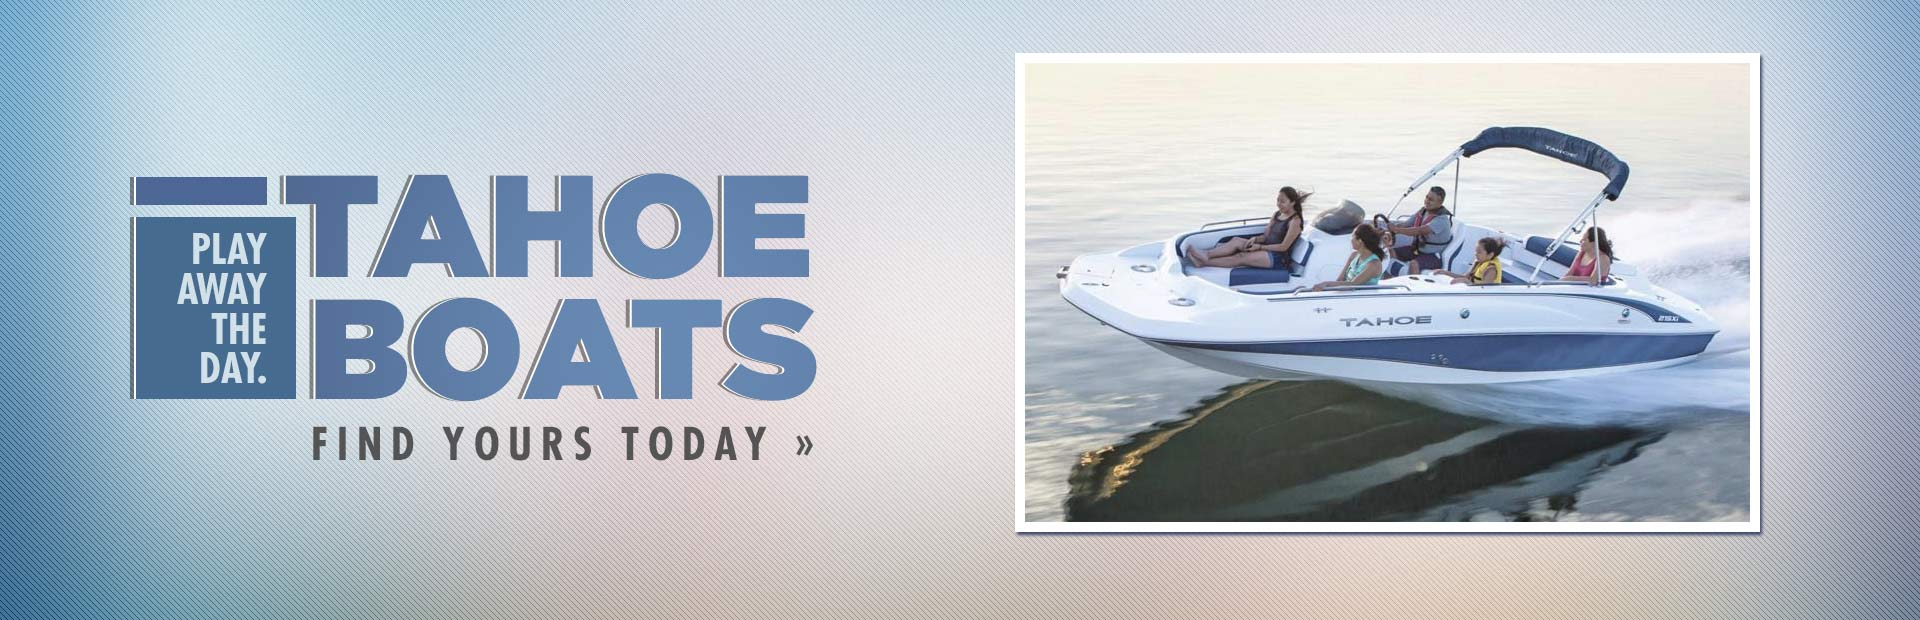 Factory sports, tourist and pleasure boats, boats, boats and other watercraft